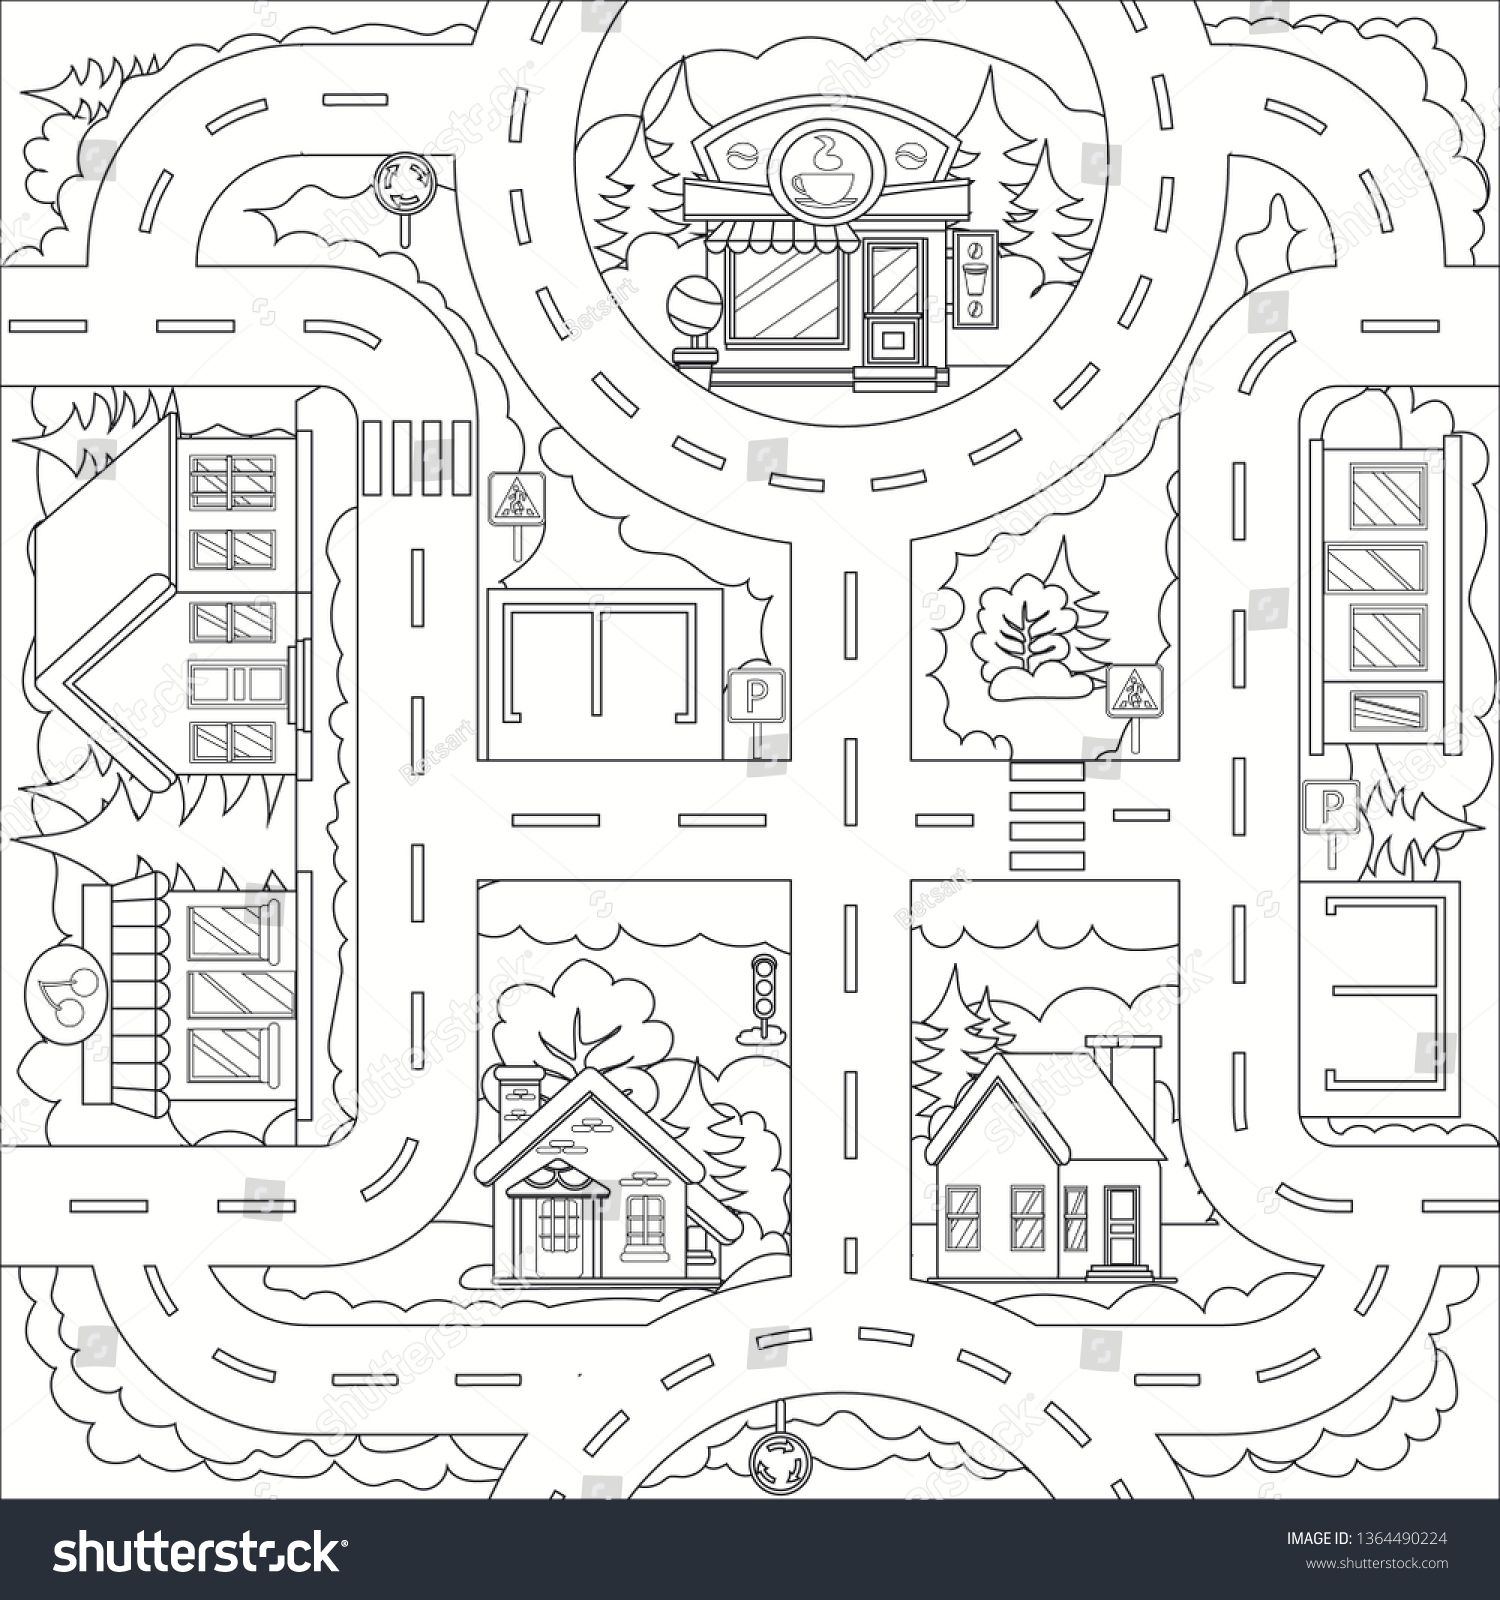 Coloring Page With Drawing City Road And Building Kids